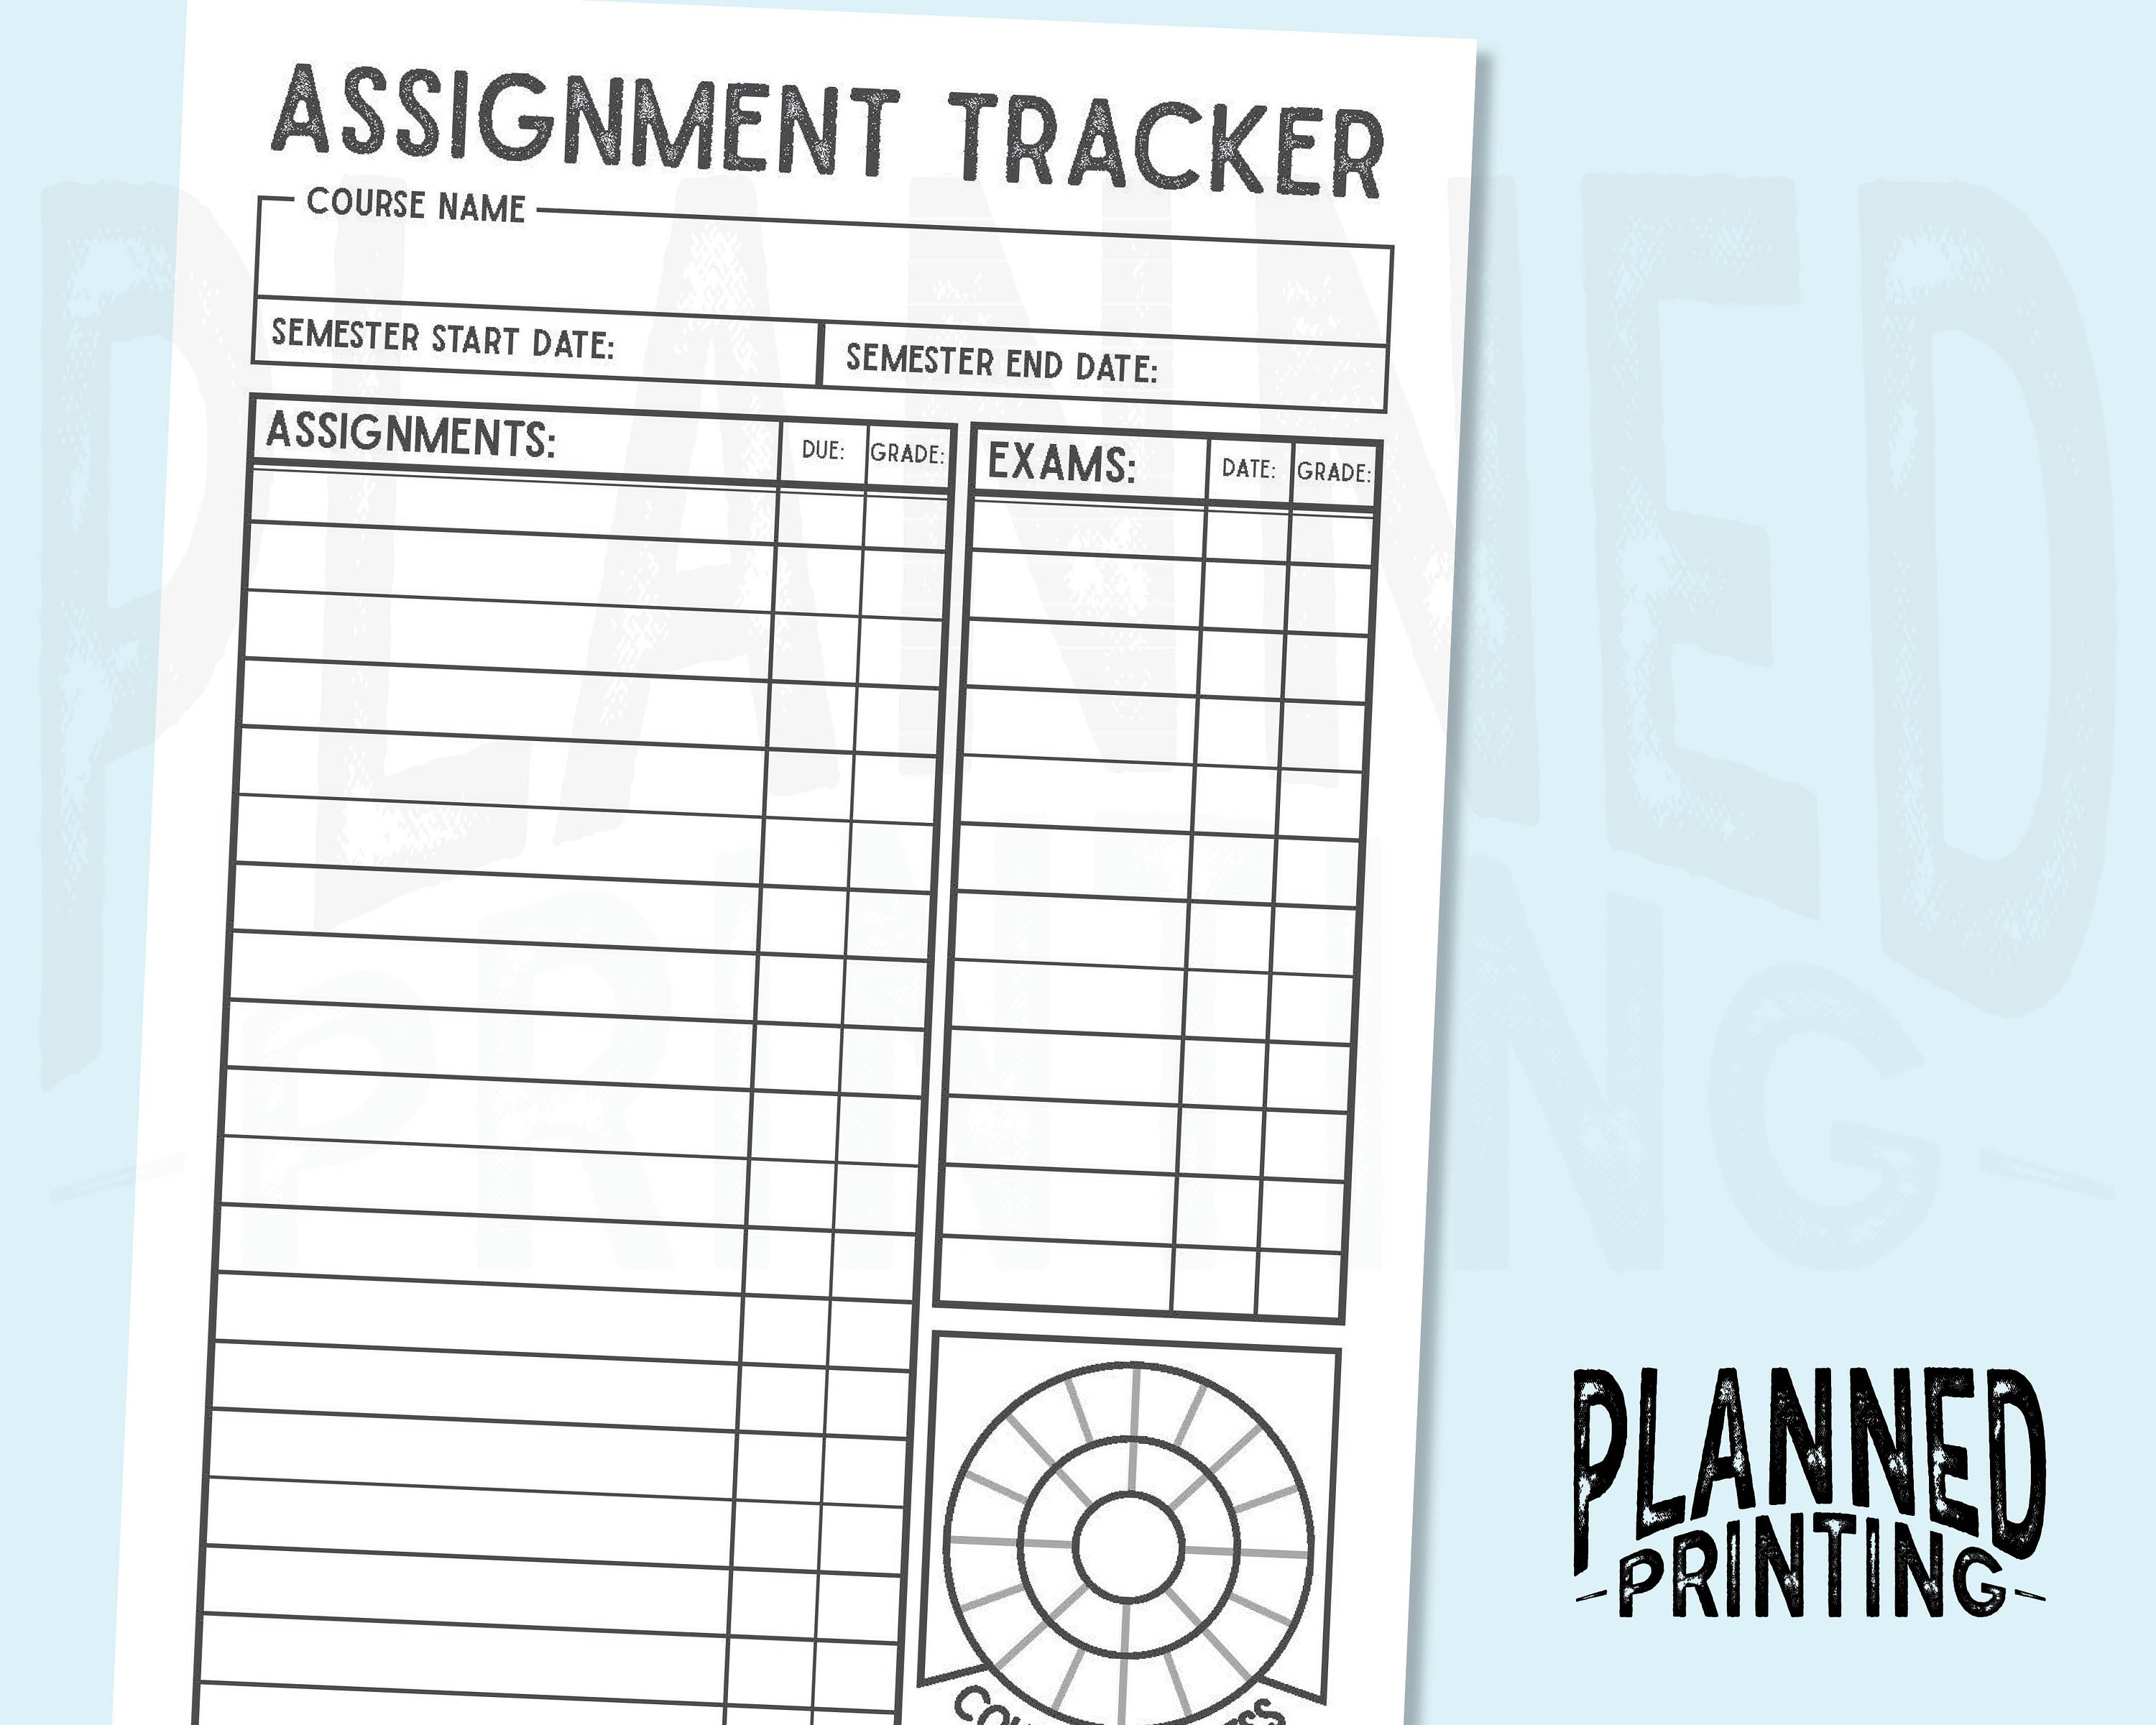 Grade Tracker Printable That Are Eloquent